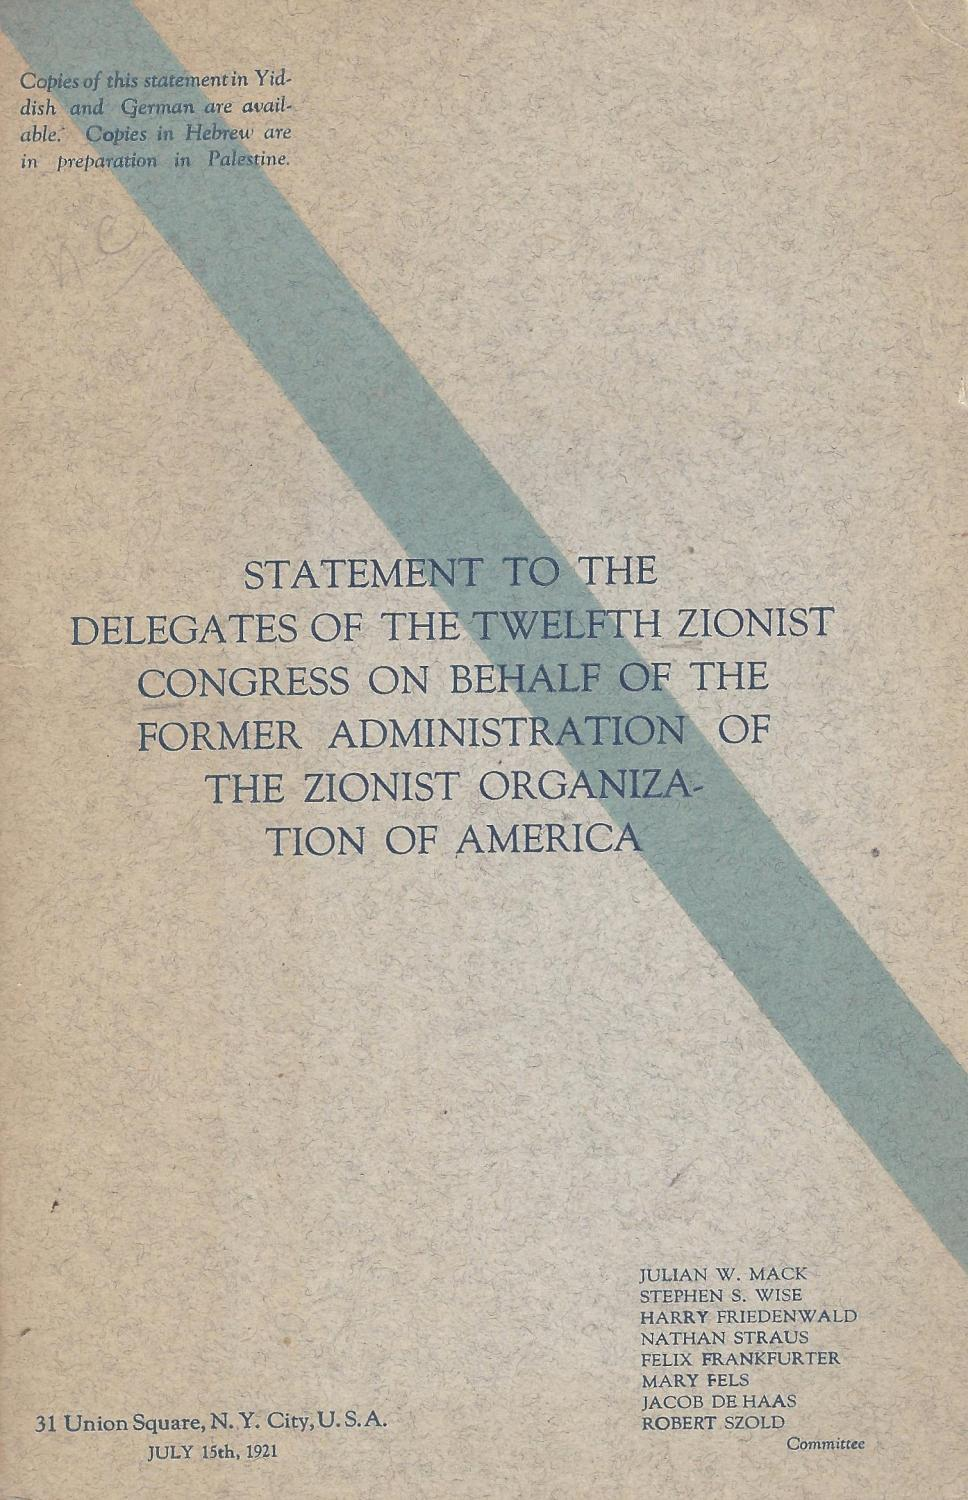 STATEMENT TO THE DELEGATES OF THE TWELFTH ZIONIST CONGRESS: ON BEHALF OF THE FORMER ADMINISTRATION ...